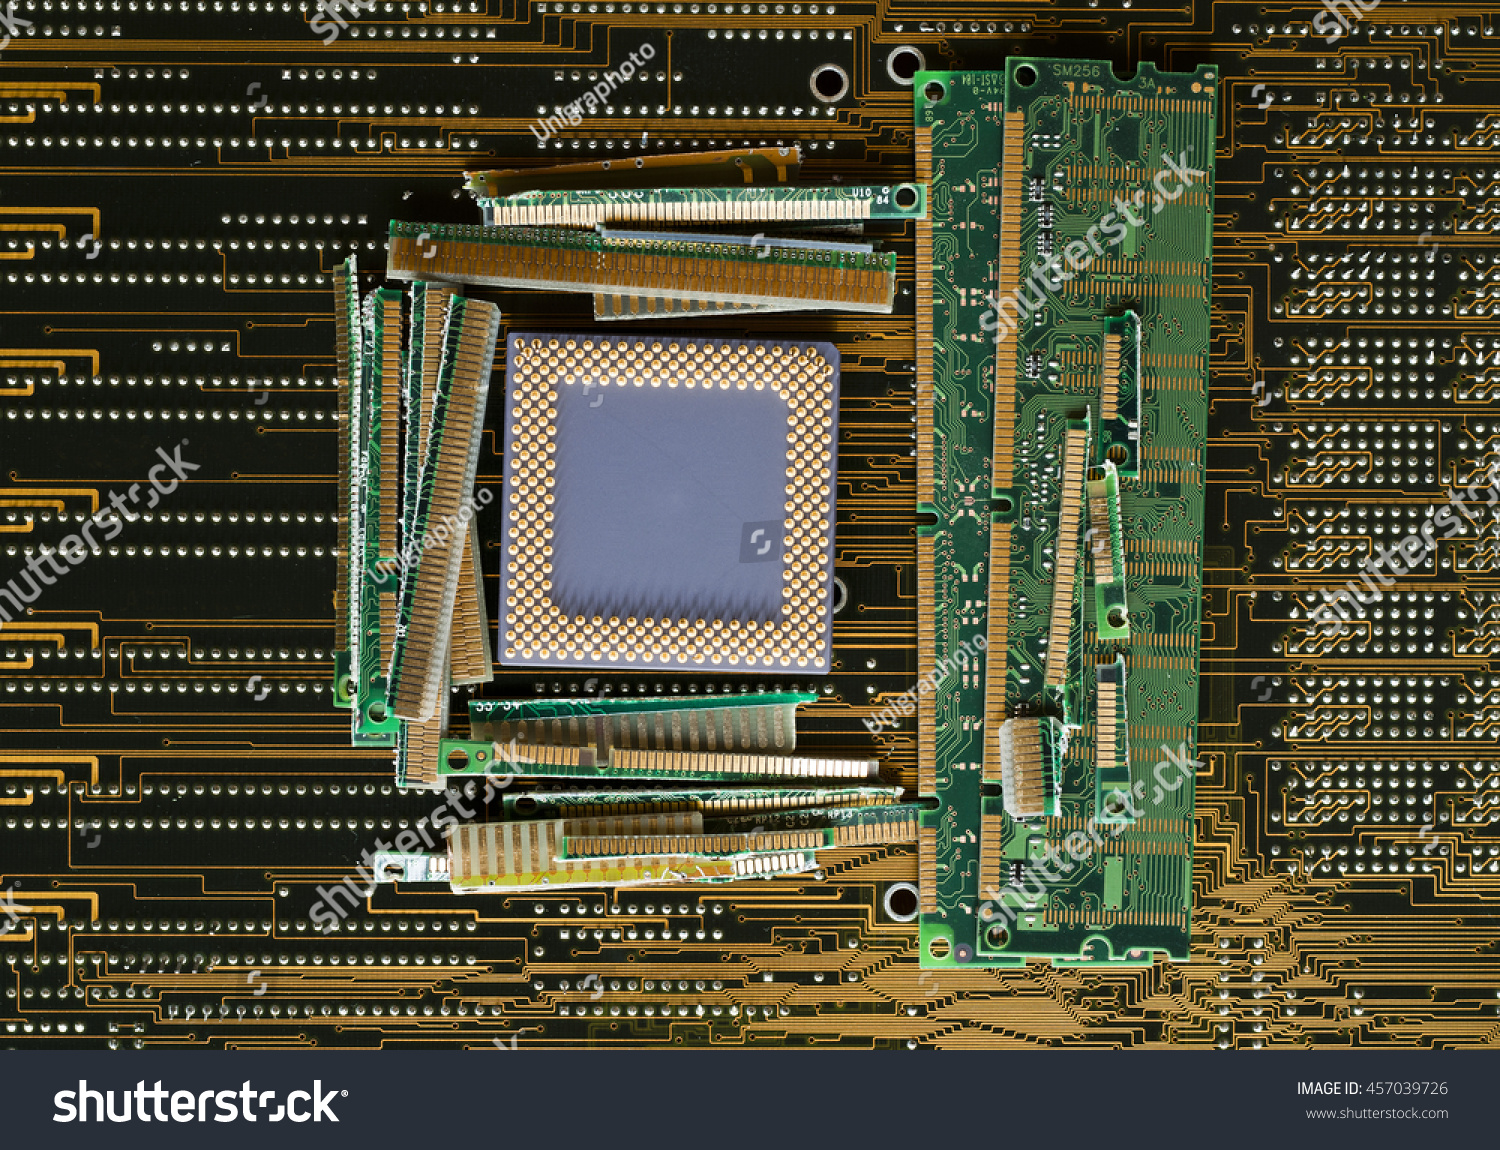 Scrap Gold Electronic Parts Waste Recycling Stock Photo Electronics Pictures From Partselectronic Computer